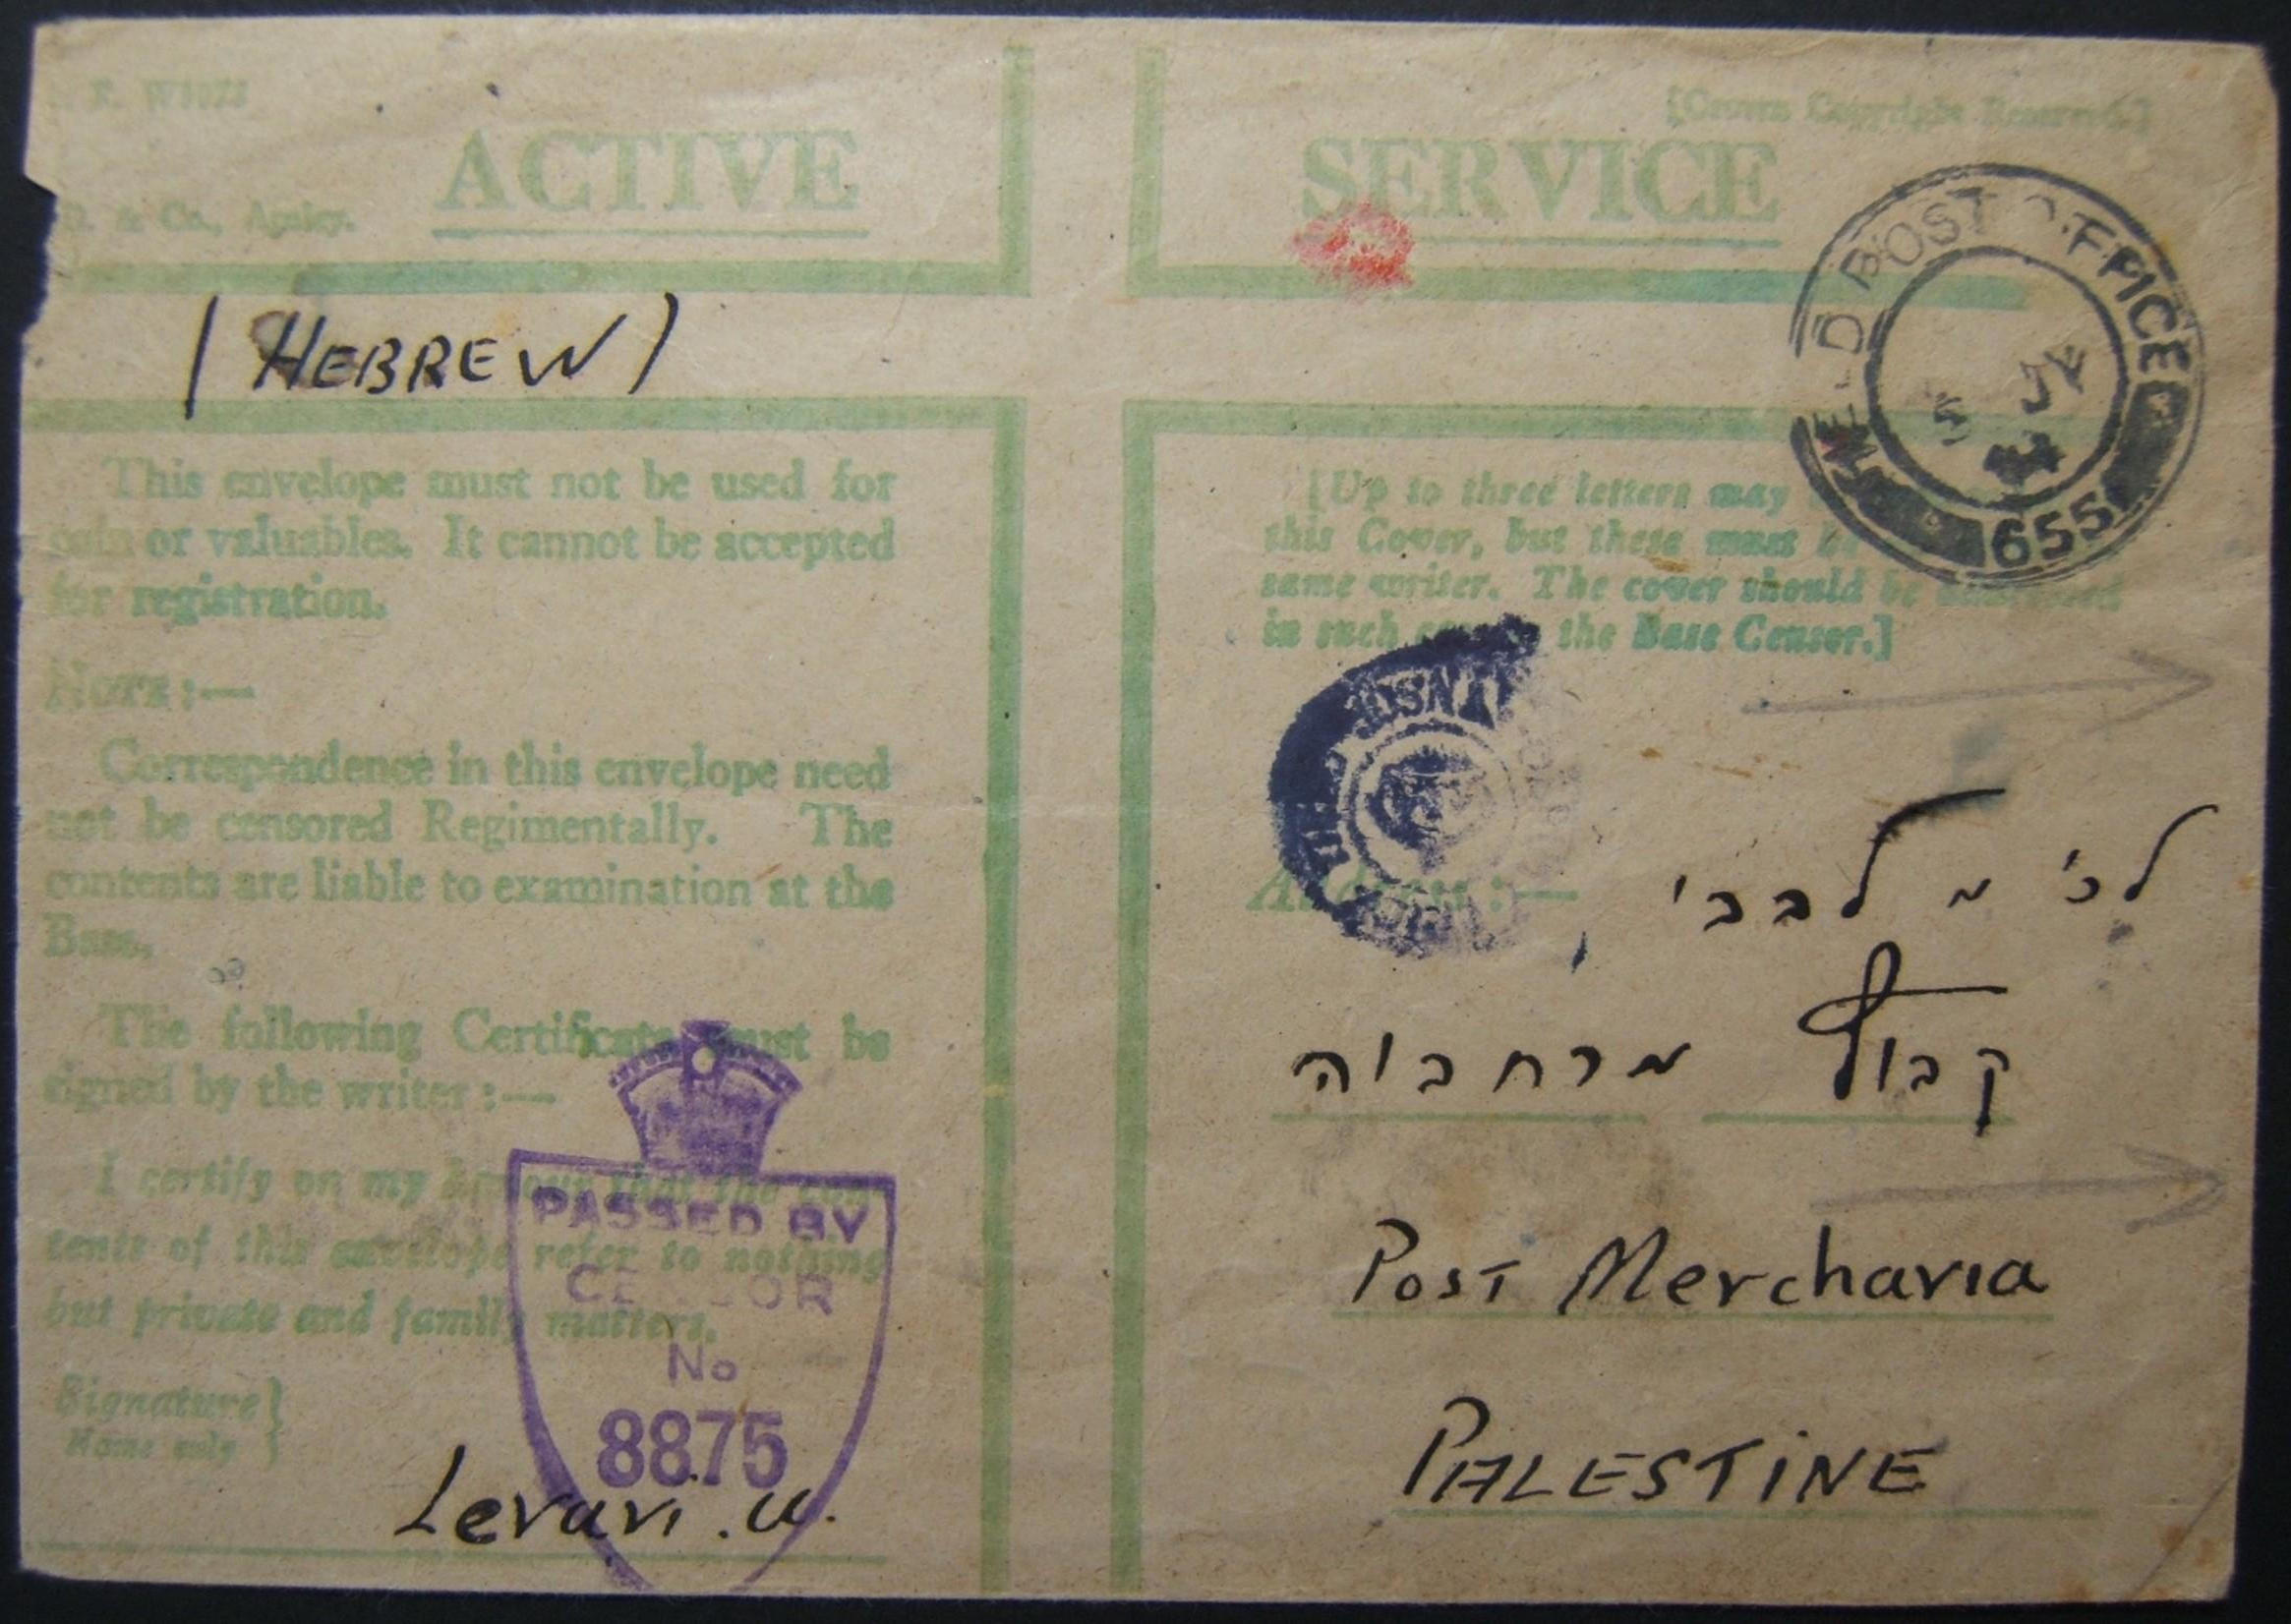 7/1944 WWII Jewish soldier mail from Egypt to MERHAVIA with rare/unrecorded postmarks